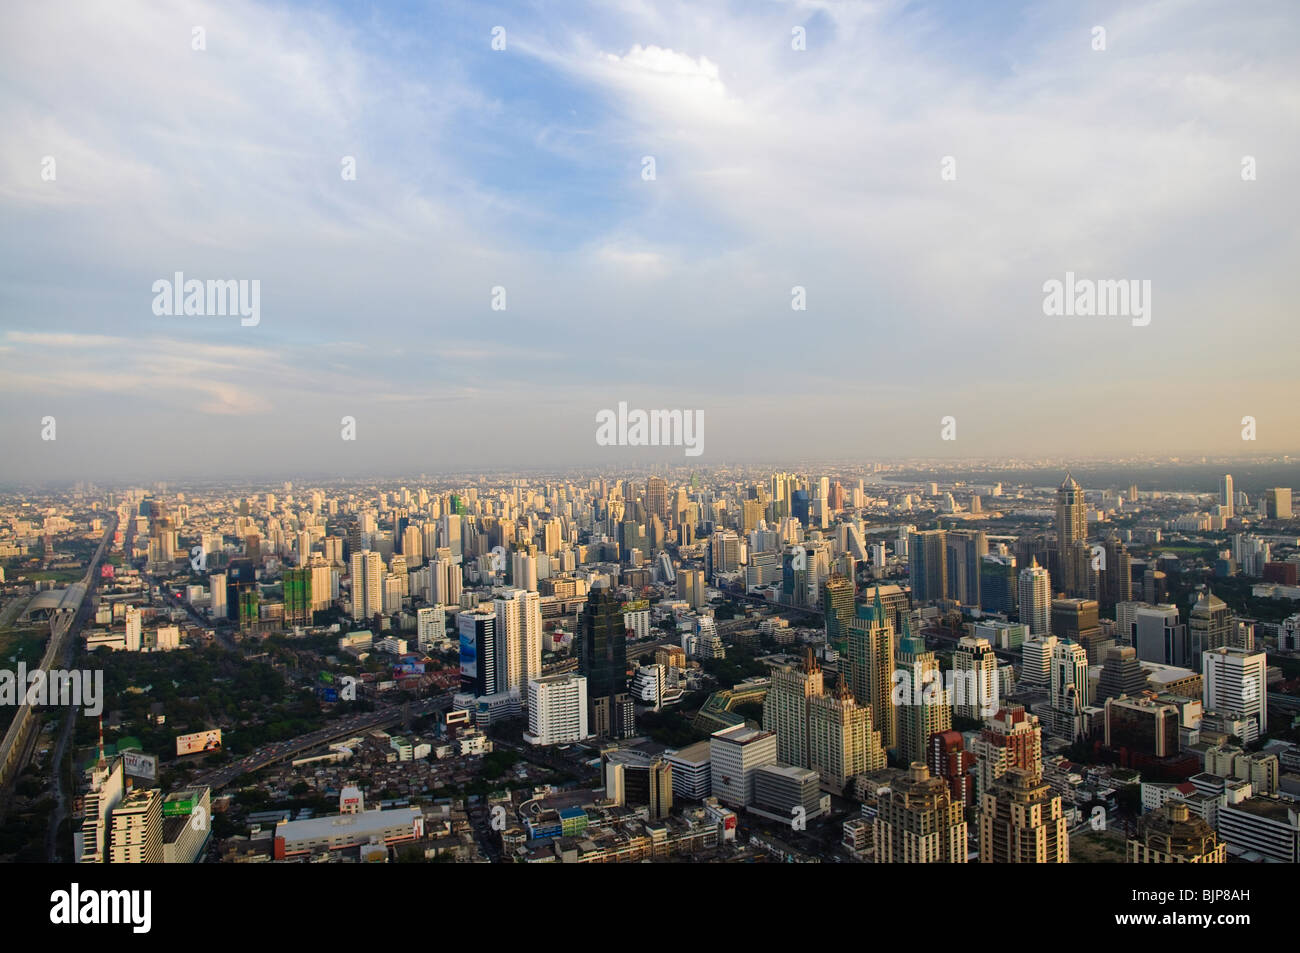 City skyline at sunset. Bangkok Thailand - Stock Image